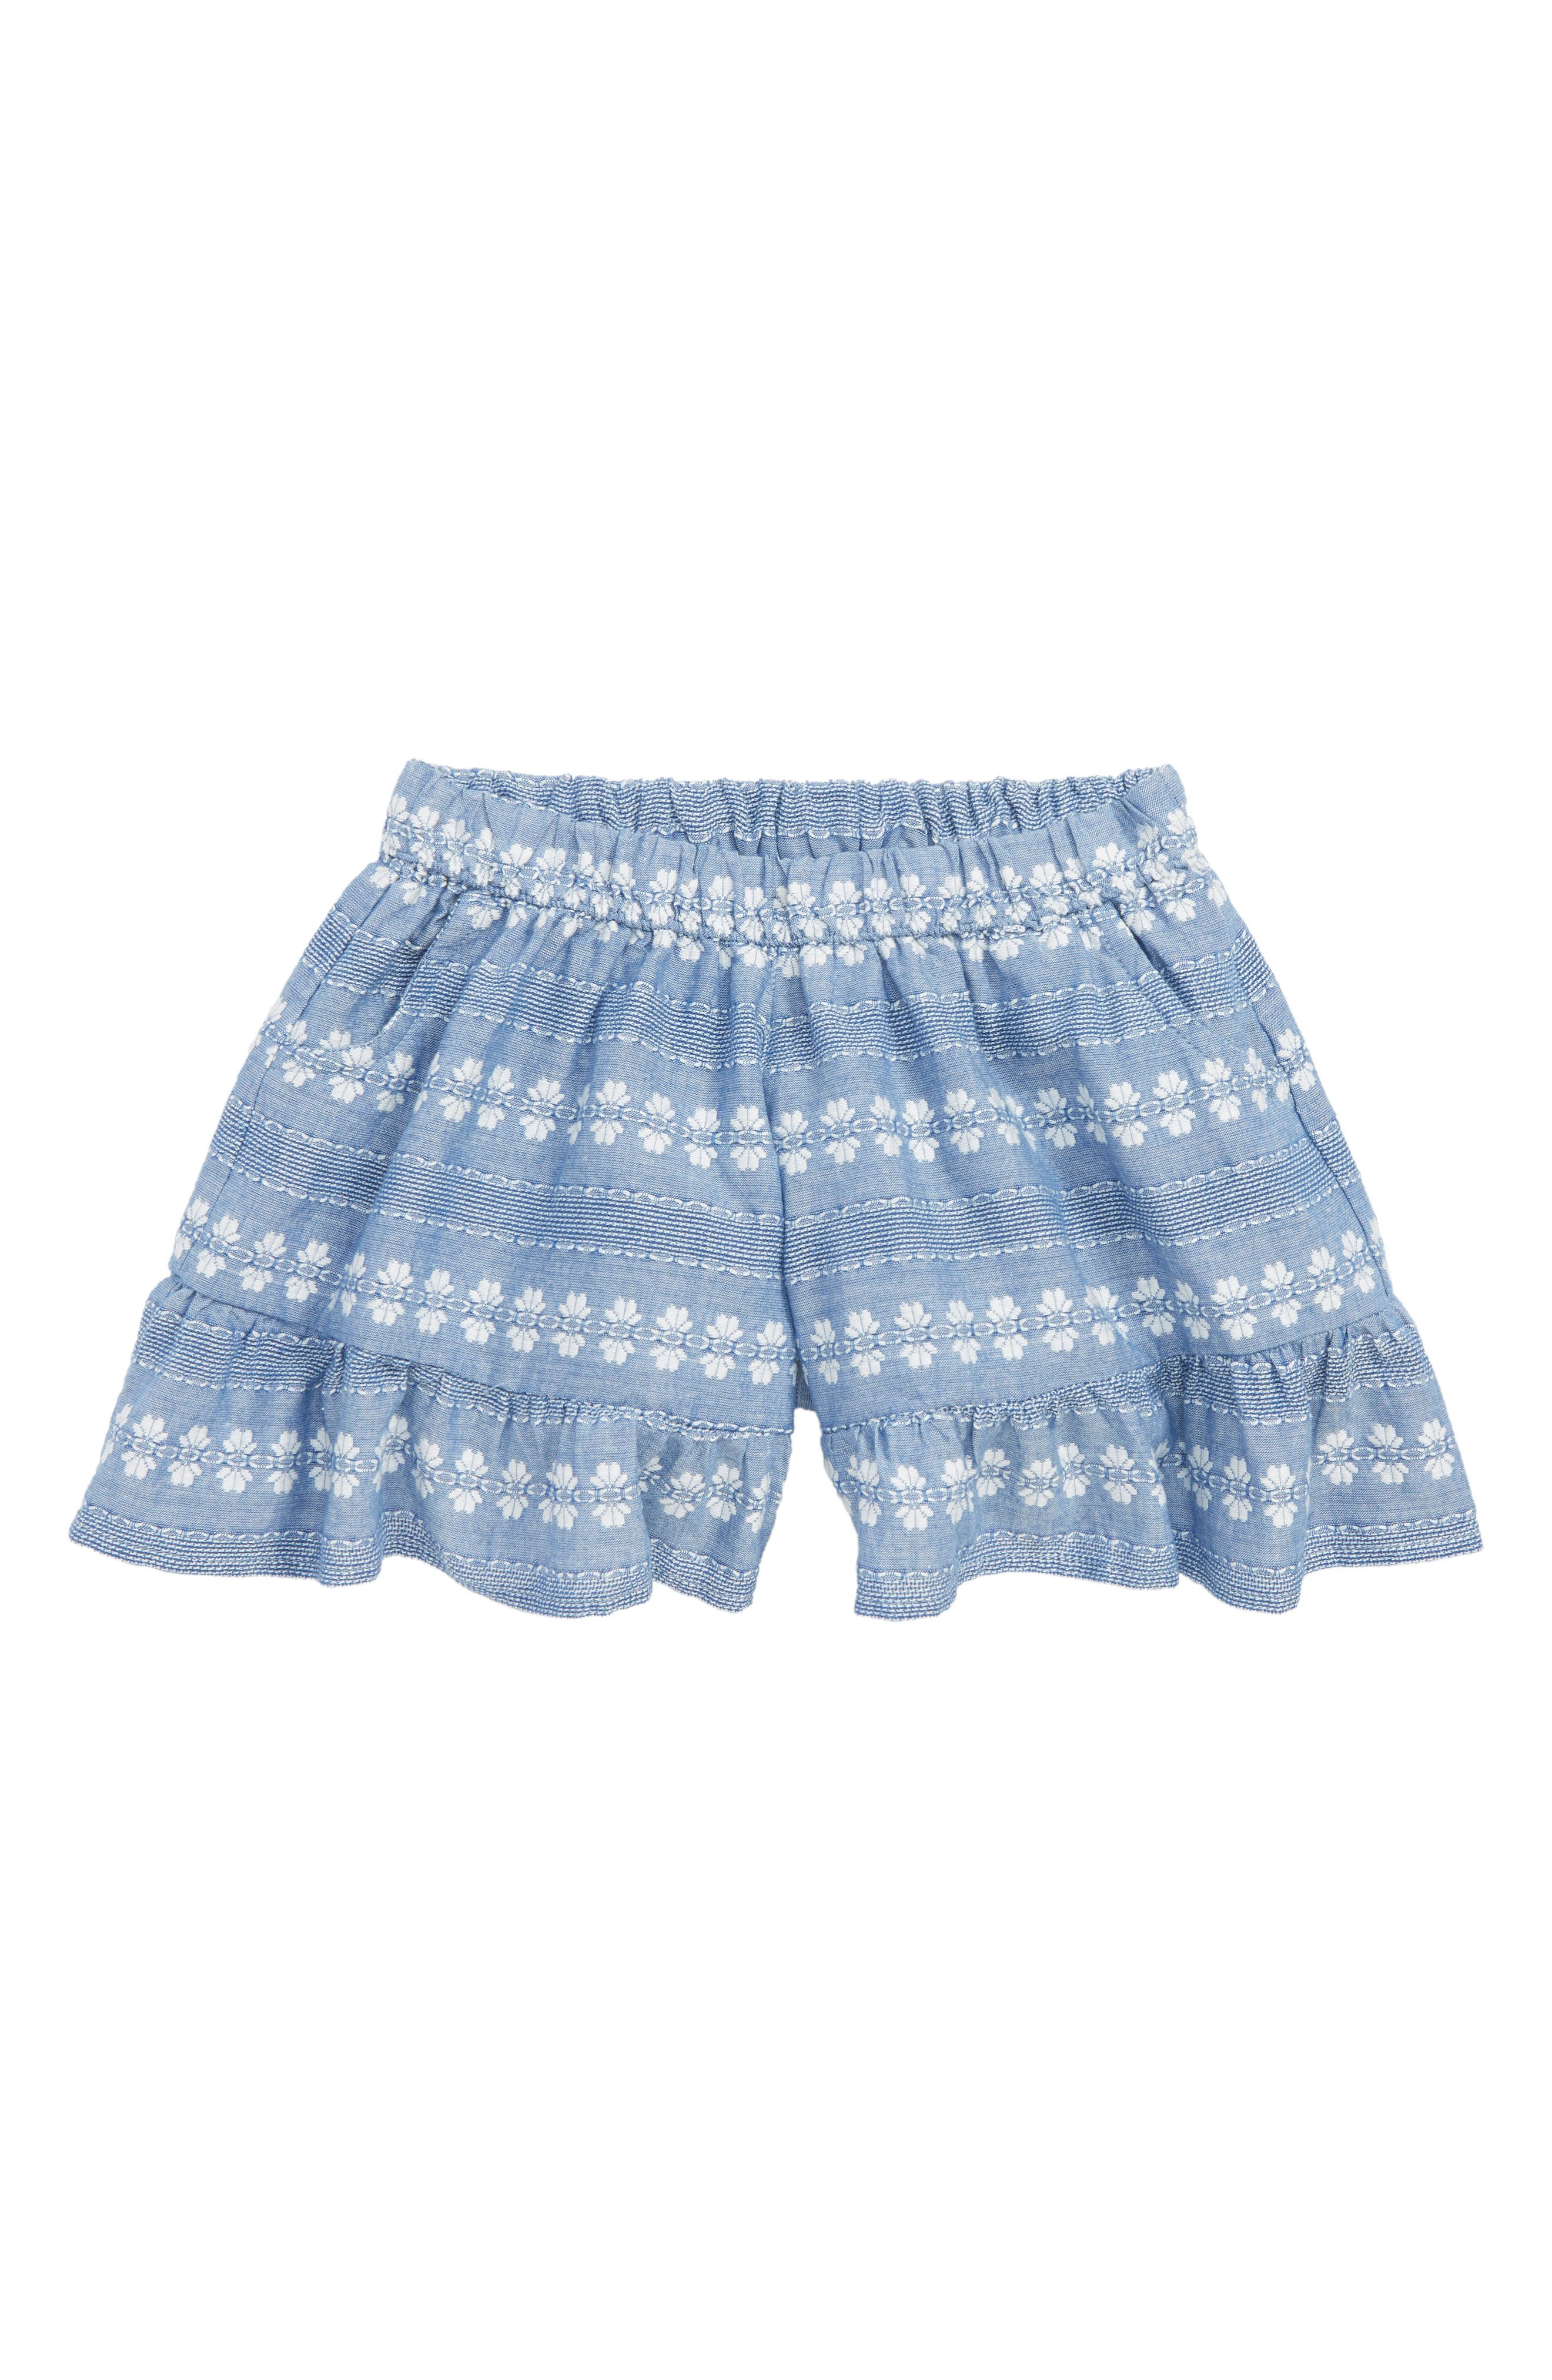 Madeline Embroidered Shorts,                             Main thumbnail 1, color,                             450